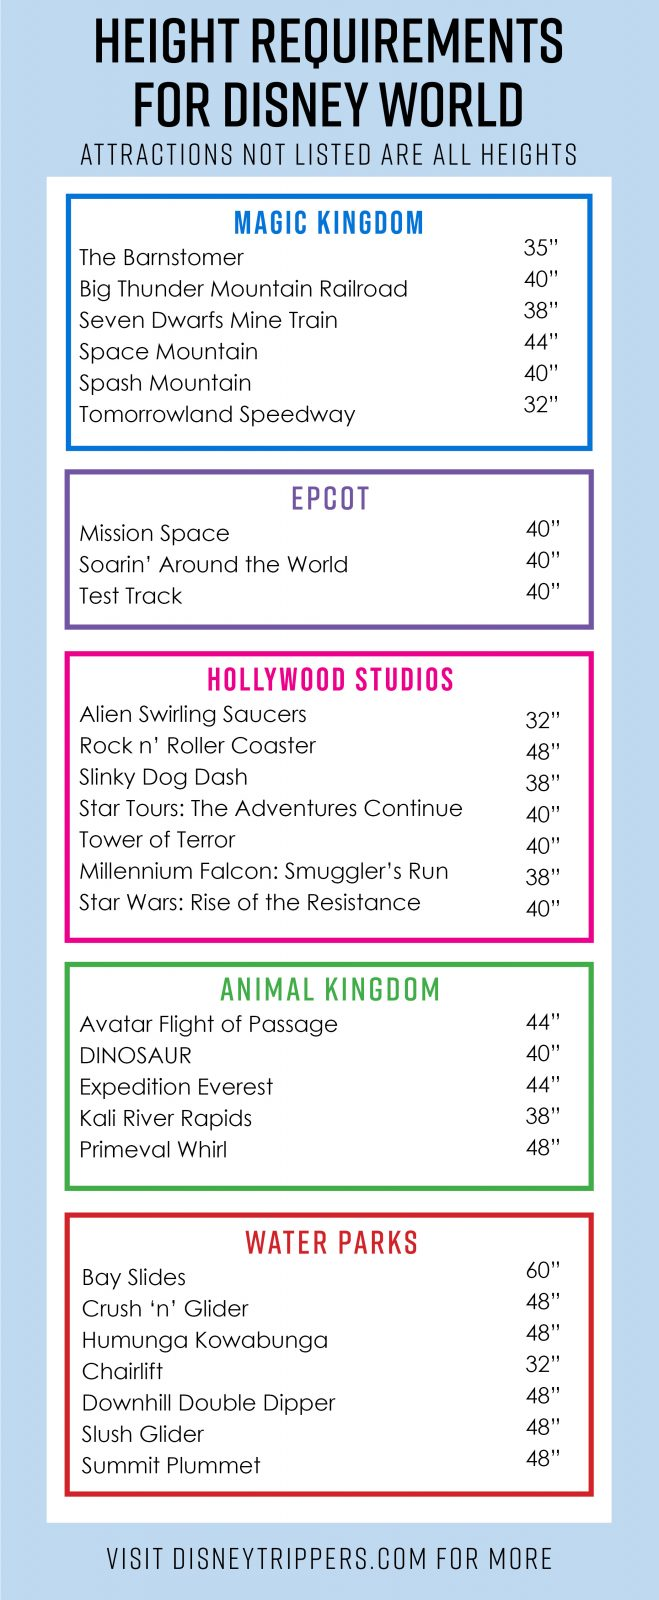 All The Height Requirements For Disney World   Understanding Disney World Height Requirements   free disney world printable graph for height requirements   how tall to ride disney rides   Disney printable for planning   tips for the best rides at Disney world   disney travel tips #disney